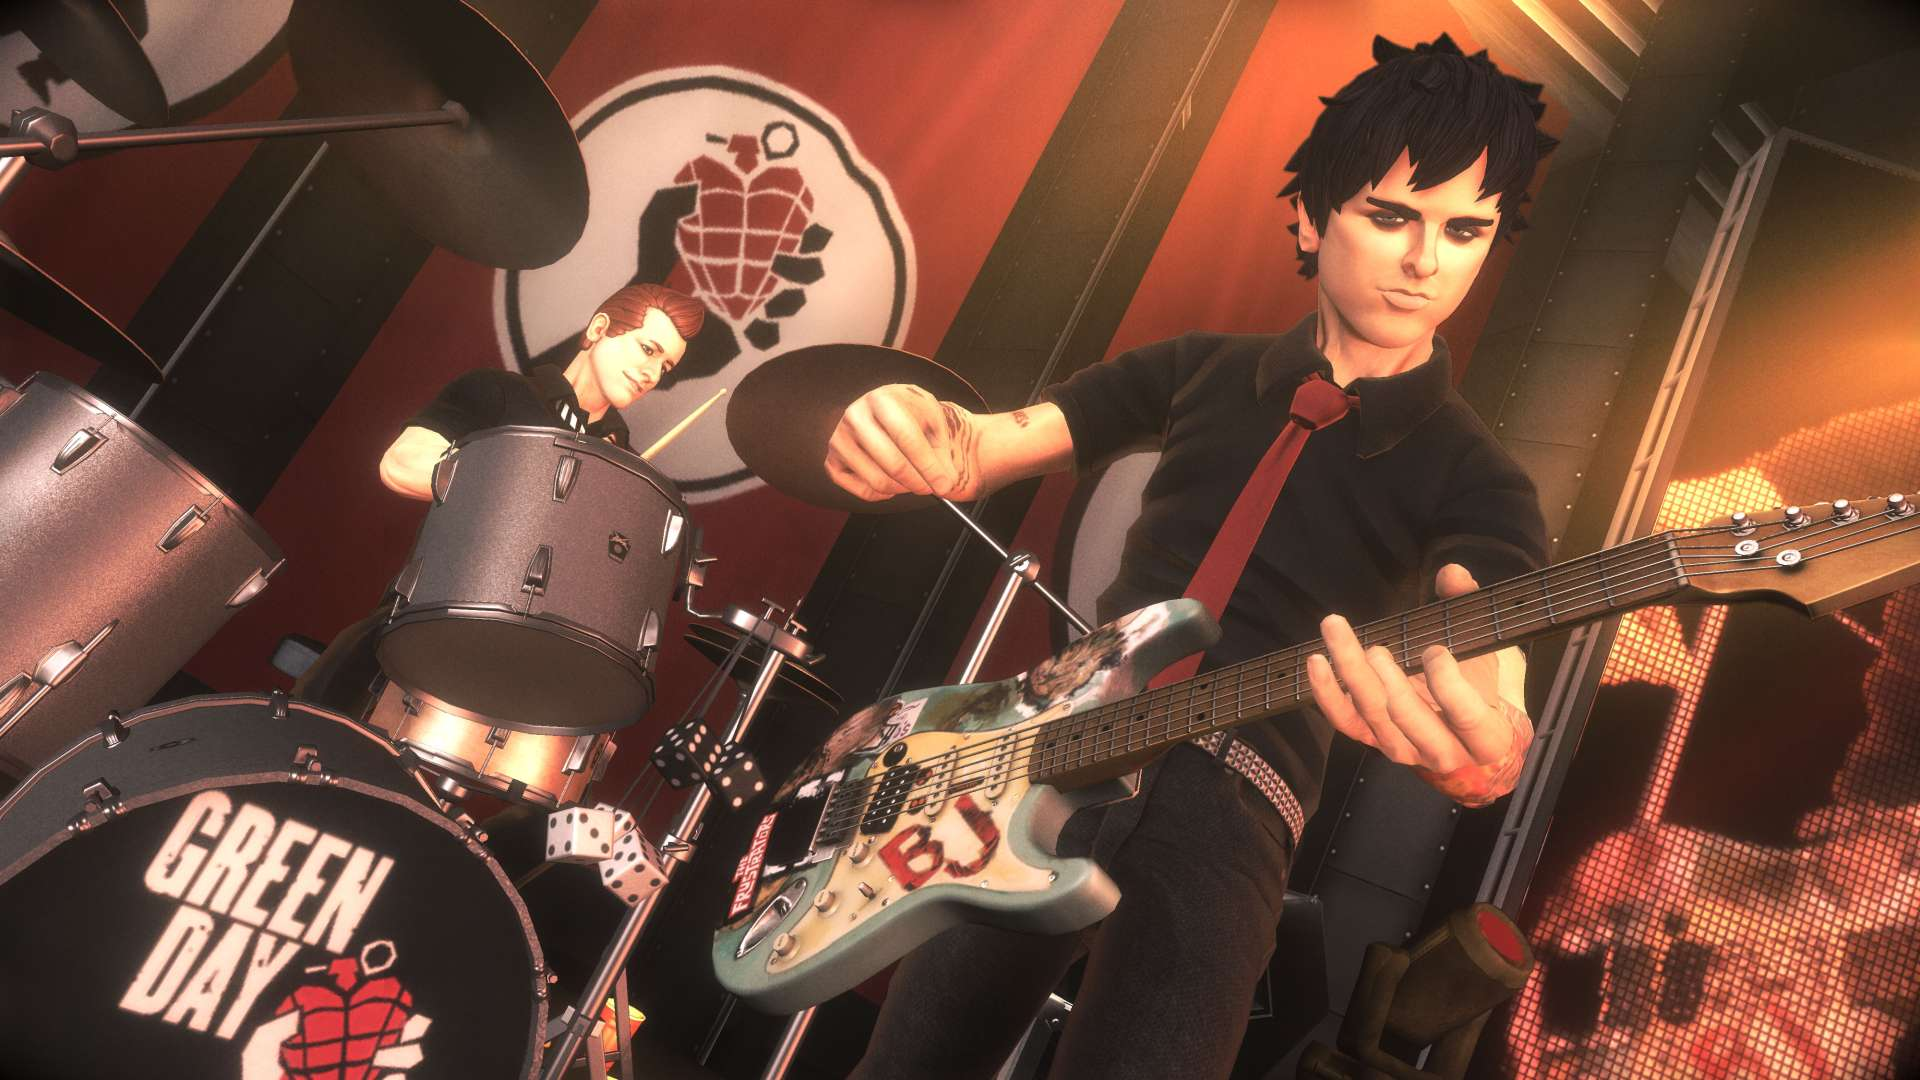 High Resolution Wallpaper | Greenday Rockband 1920x1080 px